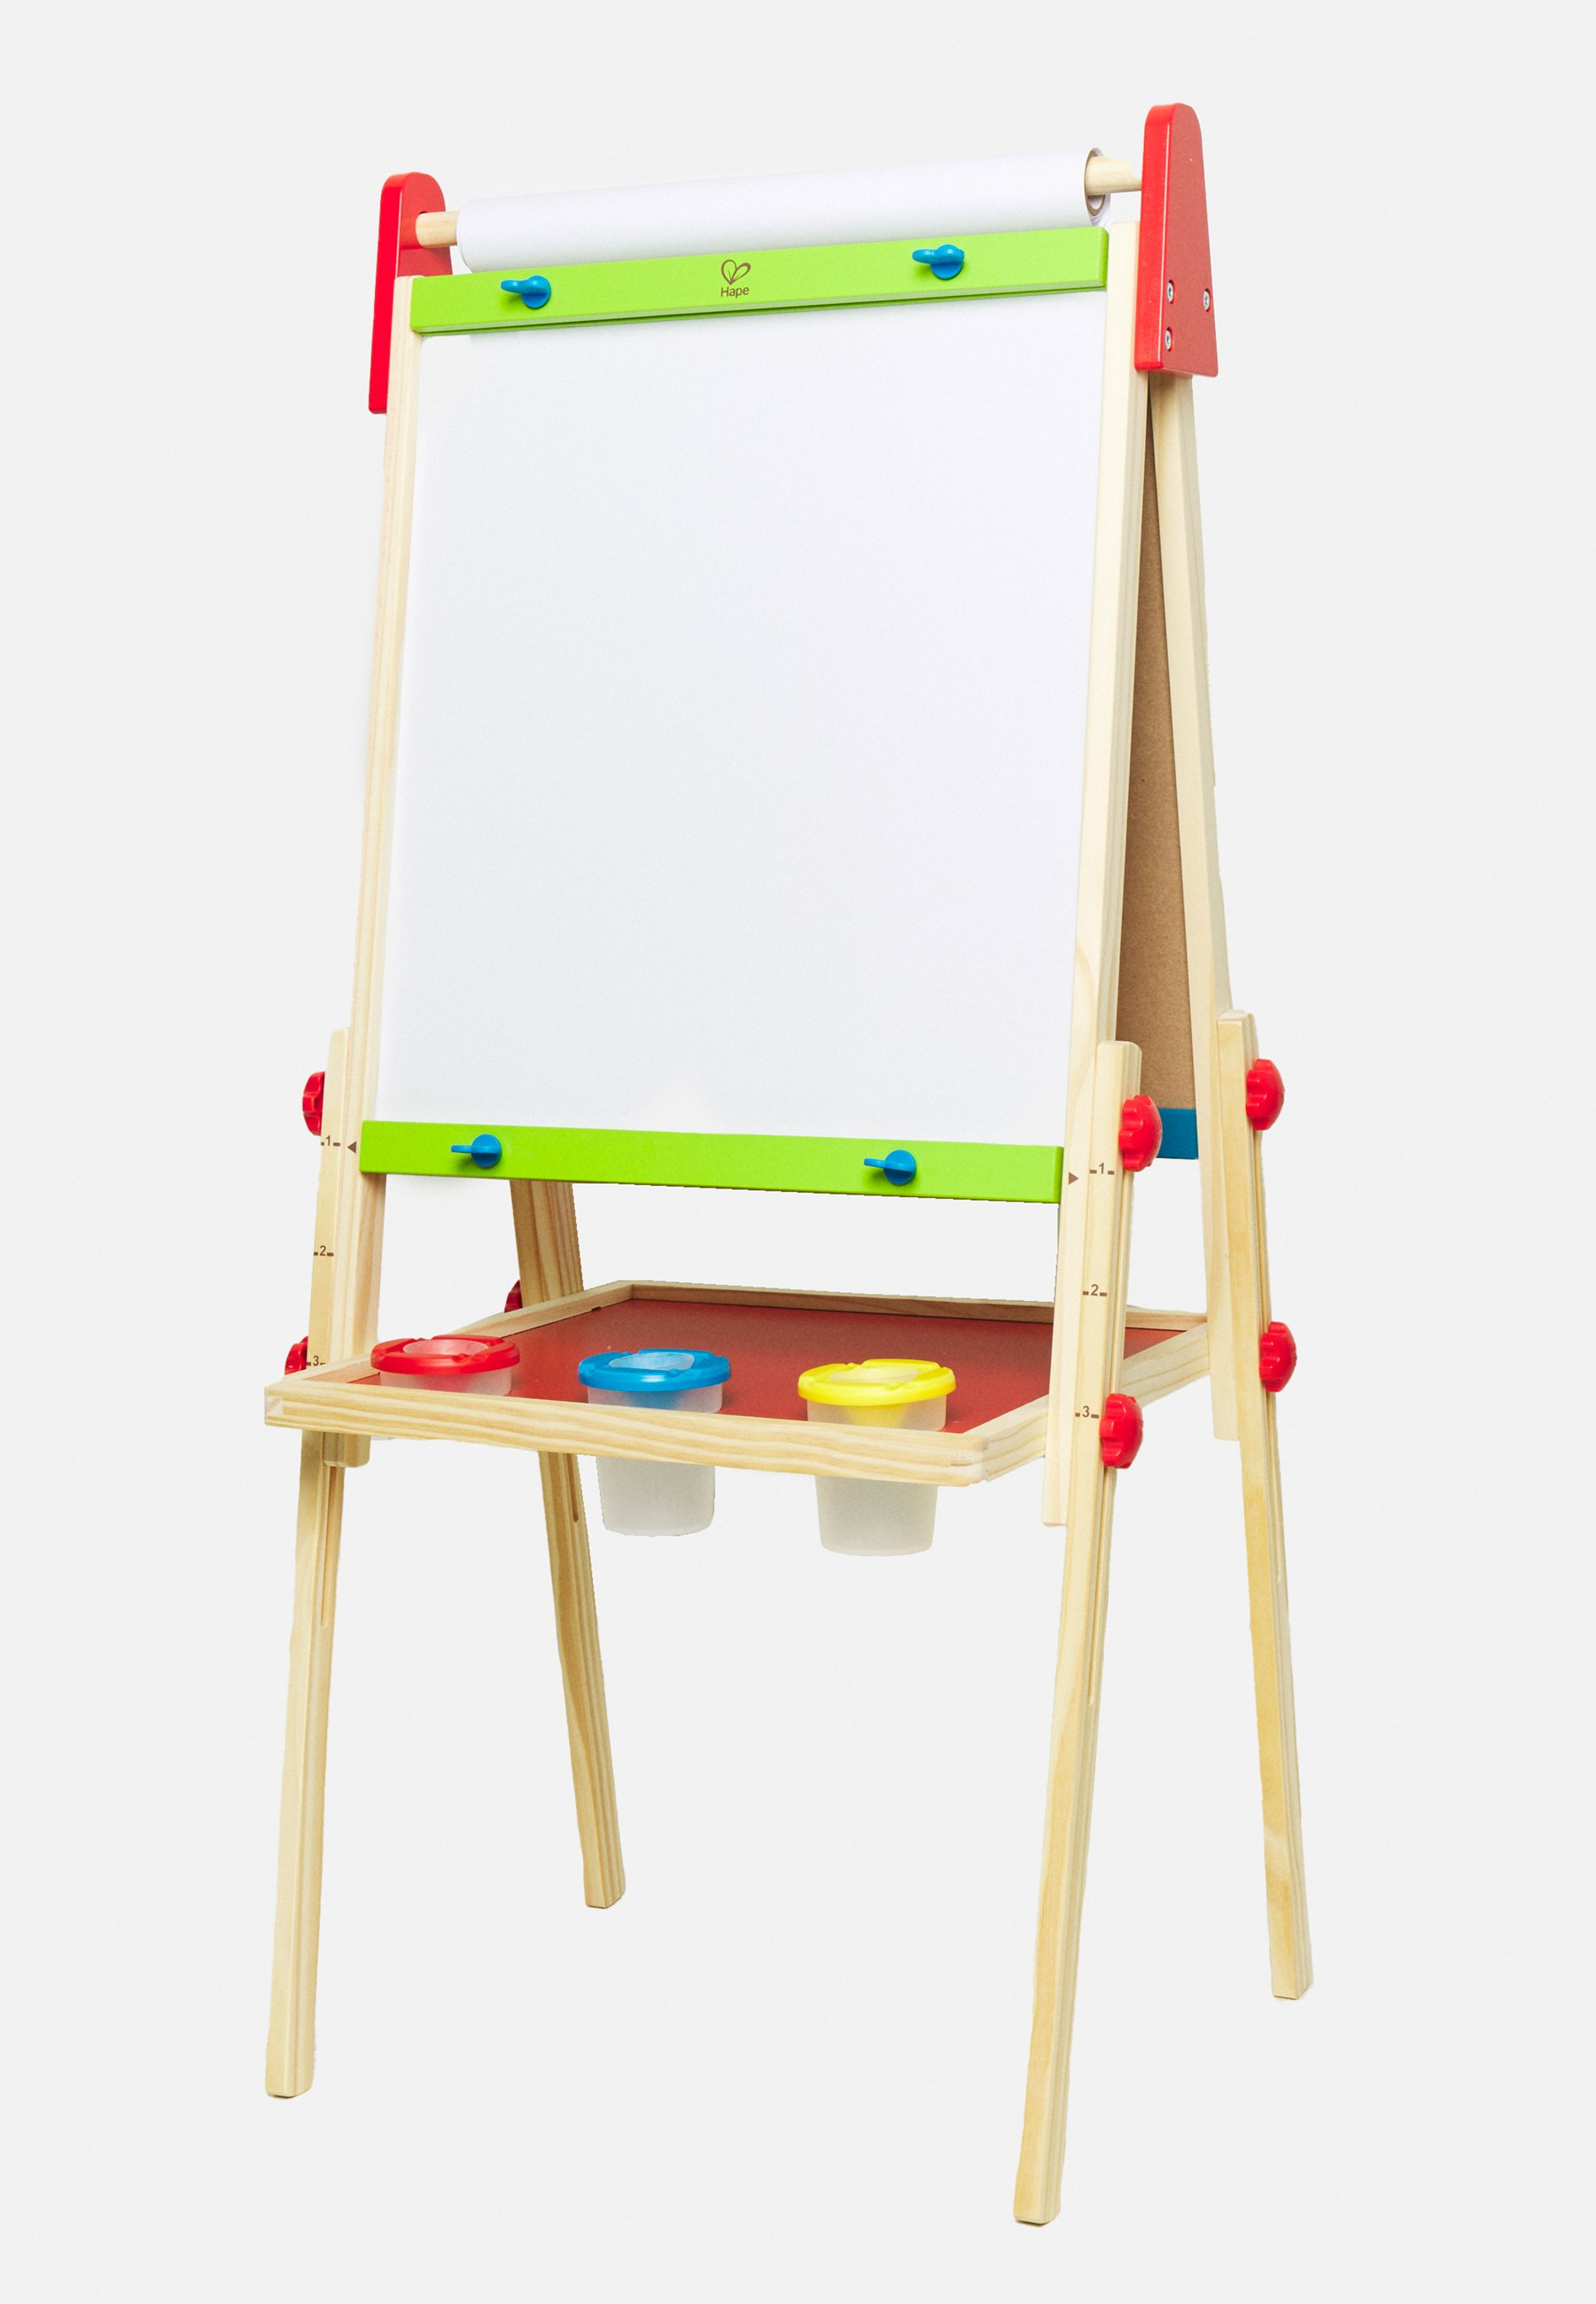 Kinder ALL IN EASEL - Spielzeug